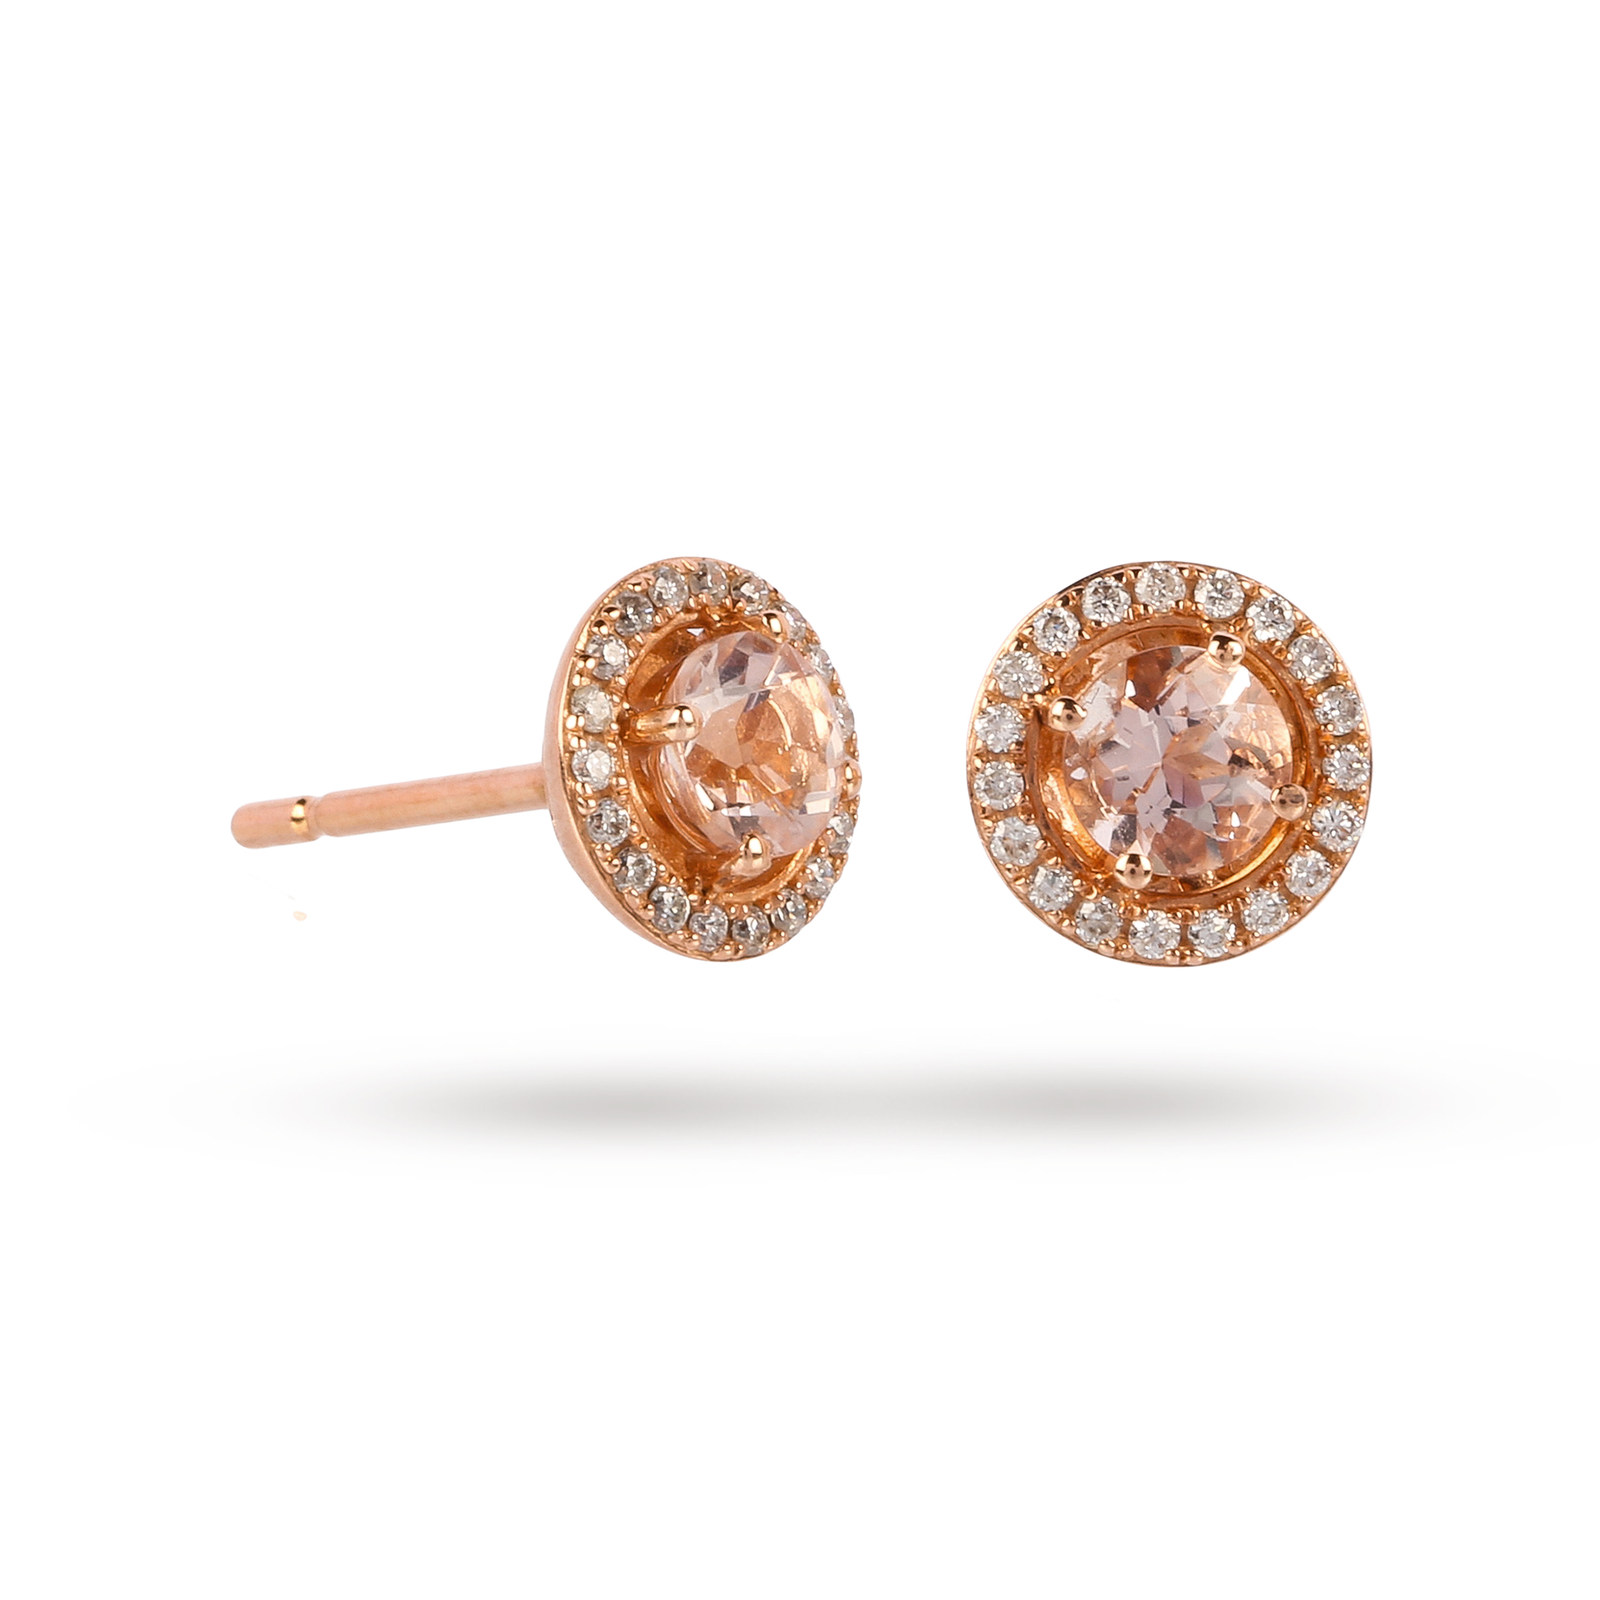 bond stud earrings morganite fifth a products mg